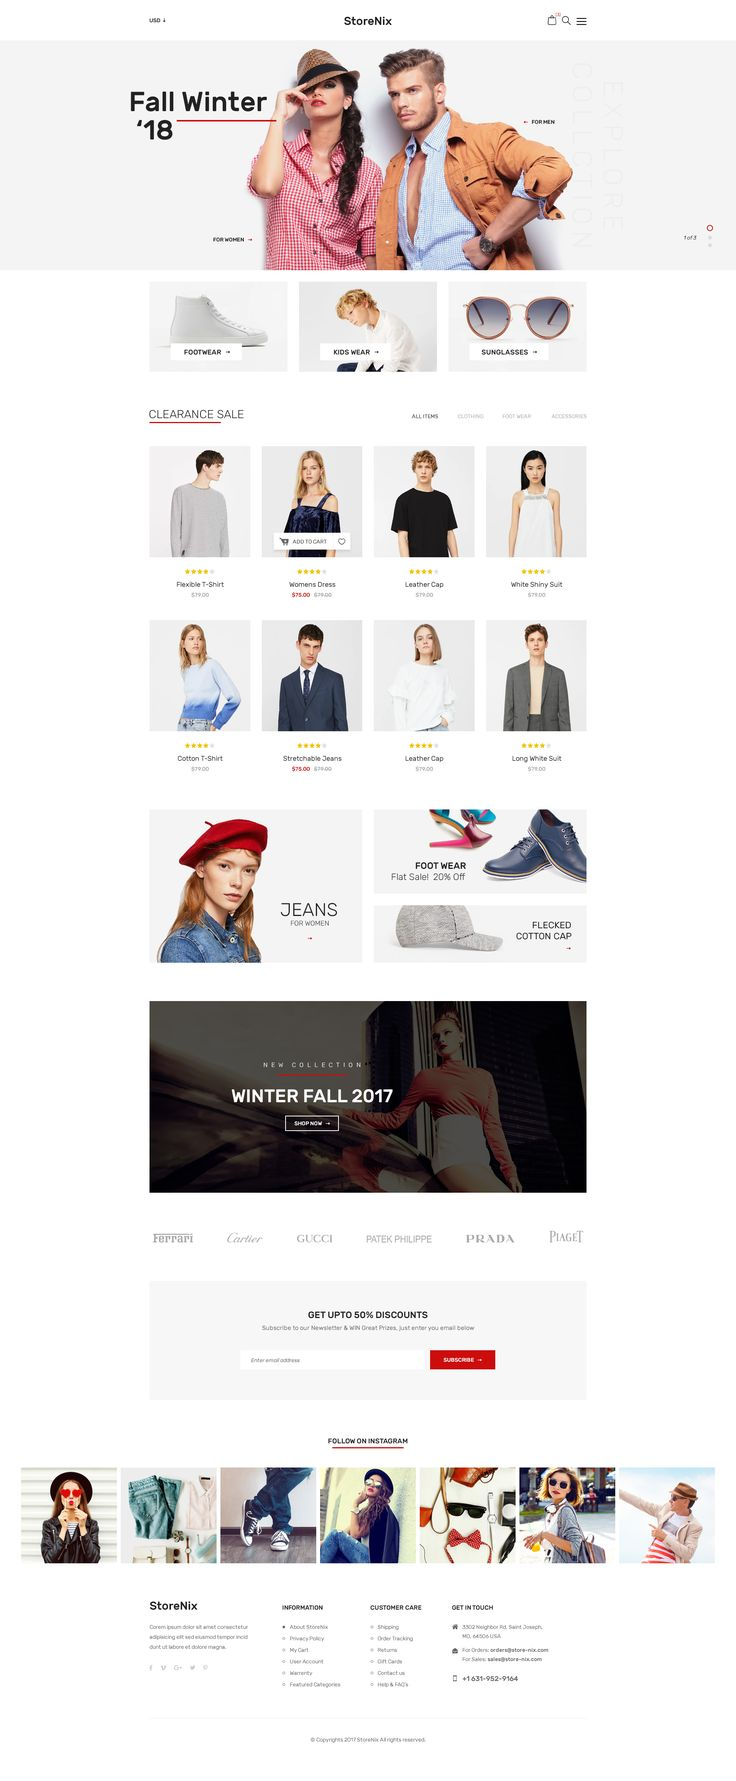 StoreNix - Multipurpose Ecommerce PSD Template #clean #clothes #electronics • Download ➝ https://themeforest.net/item/storenix-multipurpose-ecommerce-psd-template/20608874?ref=pxcr  - No site #ThemeForest encontra os melhores #Templates & #Plugins para #Wordpress. Confira em http://www.estrategiadigital.pt/themeforest-templates-wordpress/